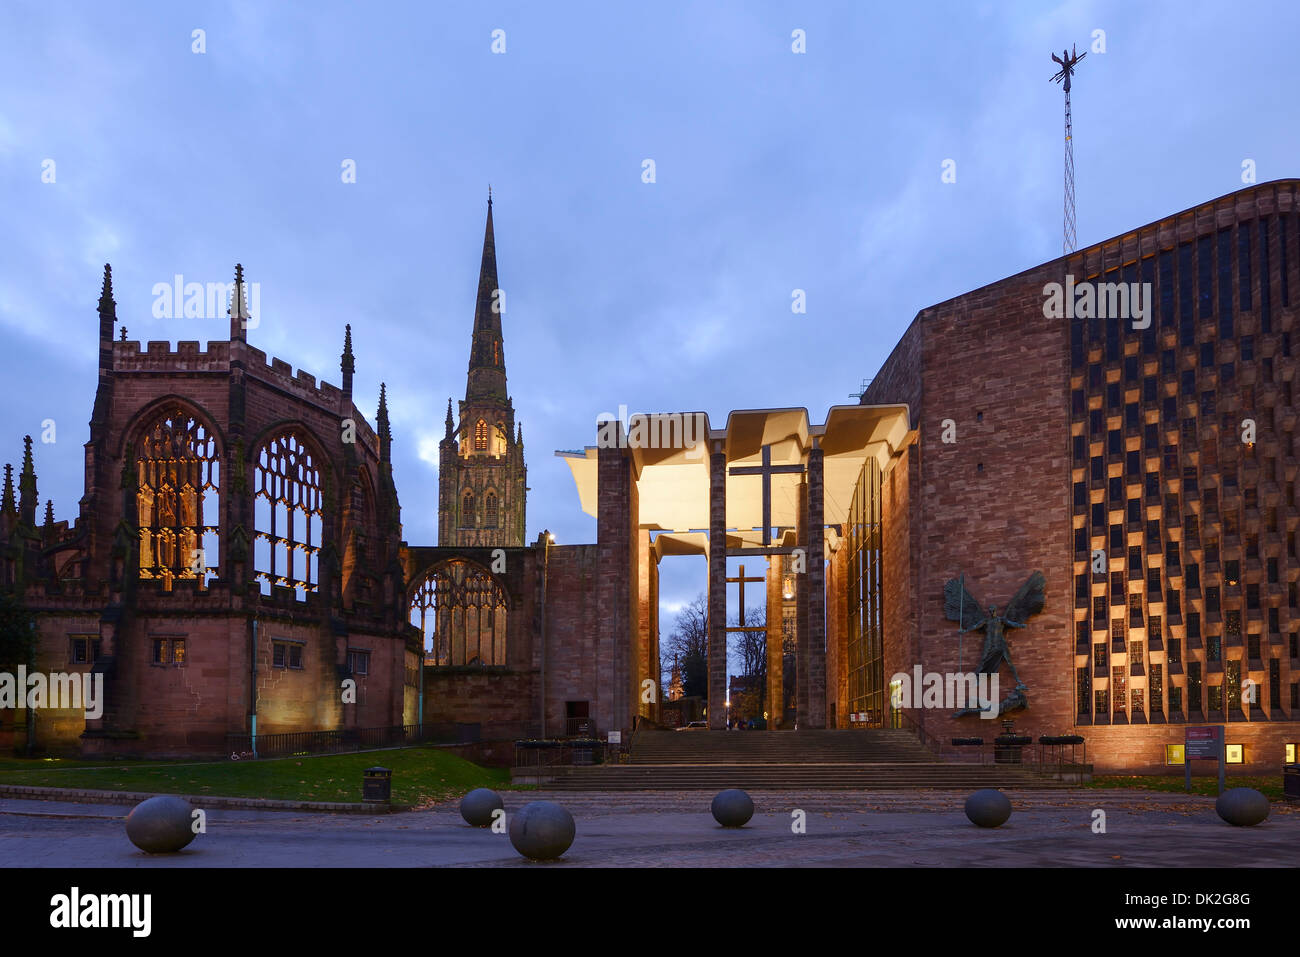 The old Coventry Cathedral alongside the New Cathedral at dusk - Stock Image